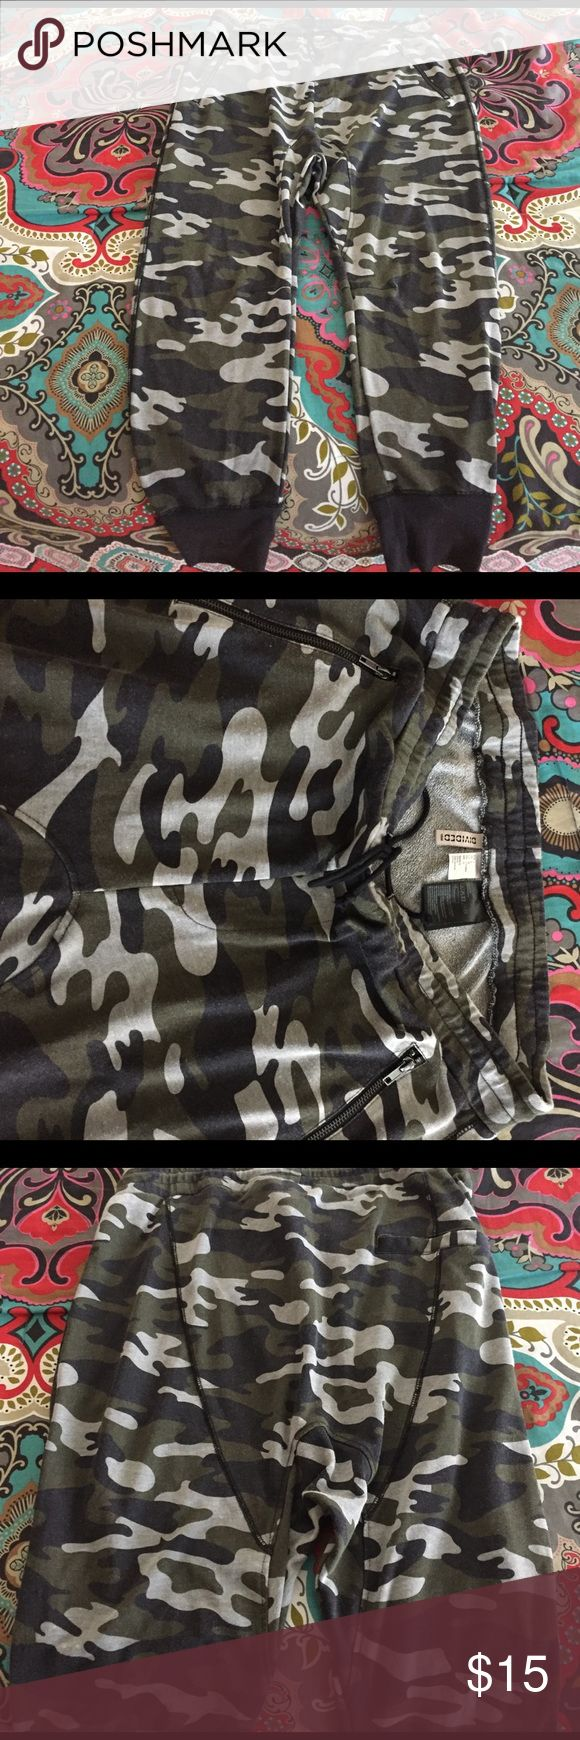 Drop crotch joggers Camoflaaaahgeeee!!  Super comfortable drop crotch joggers from H&M.  2 angled, zip pockets, drawstring waist, cuffed ankles.  Very soft material.  55% polyester, 45% cotton H&M Pants Track Pants & Joggers